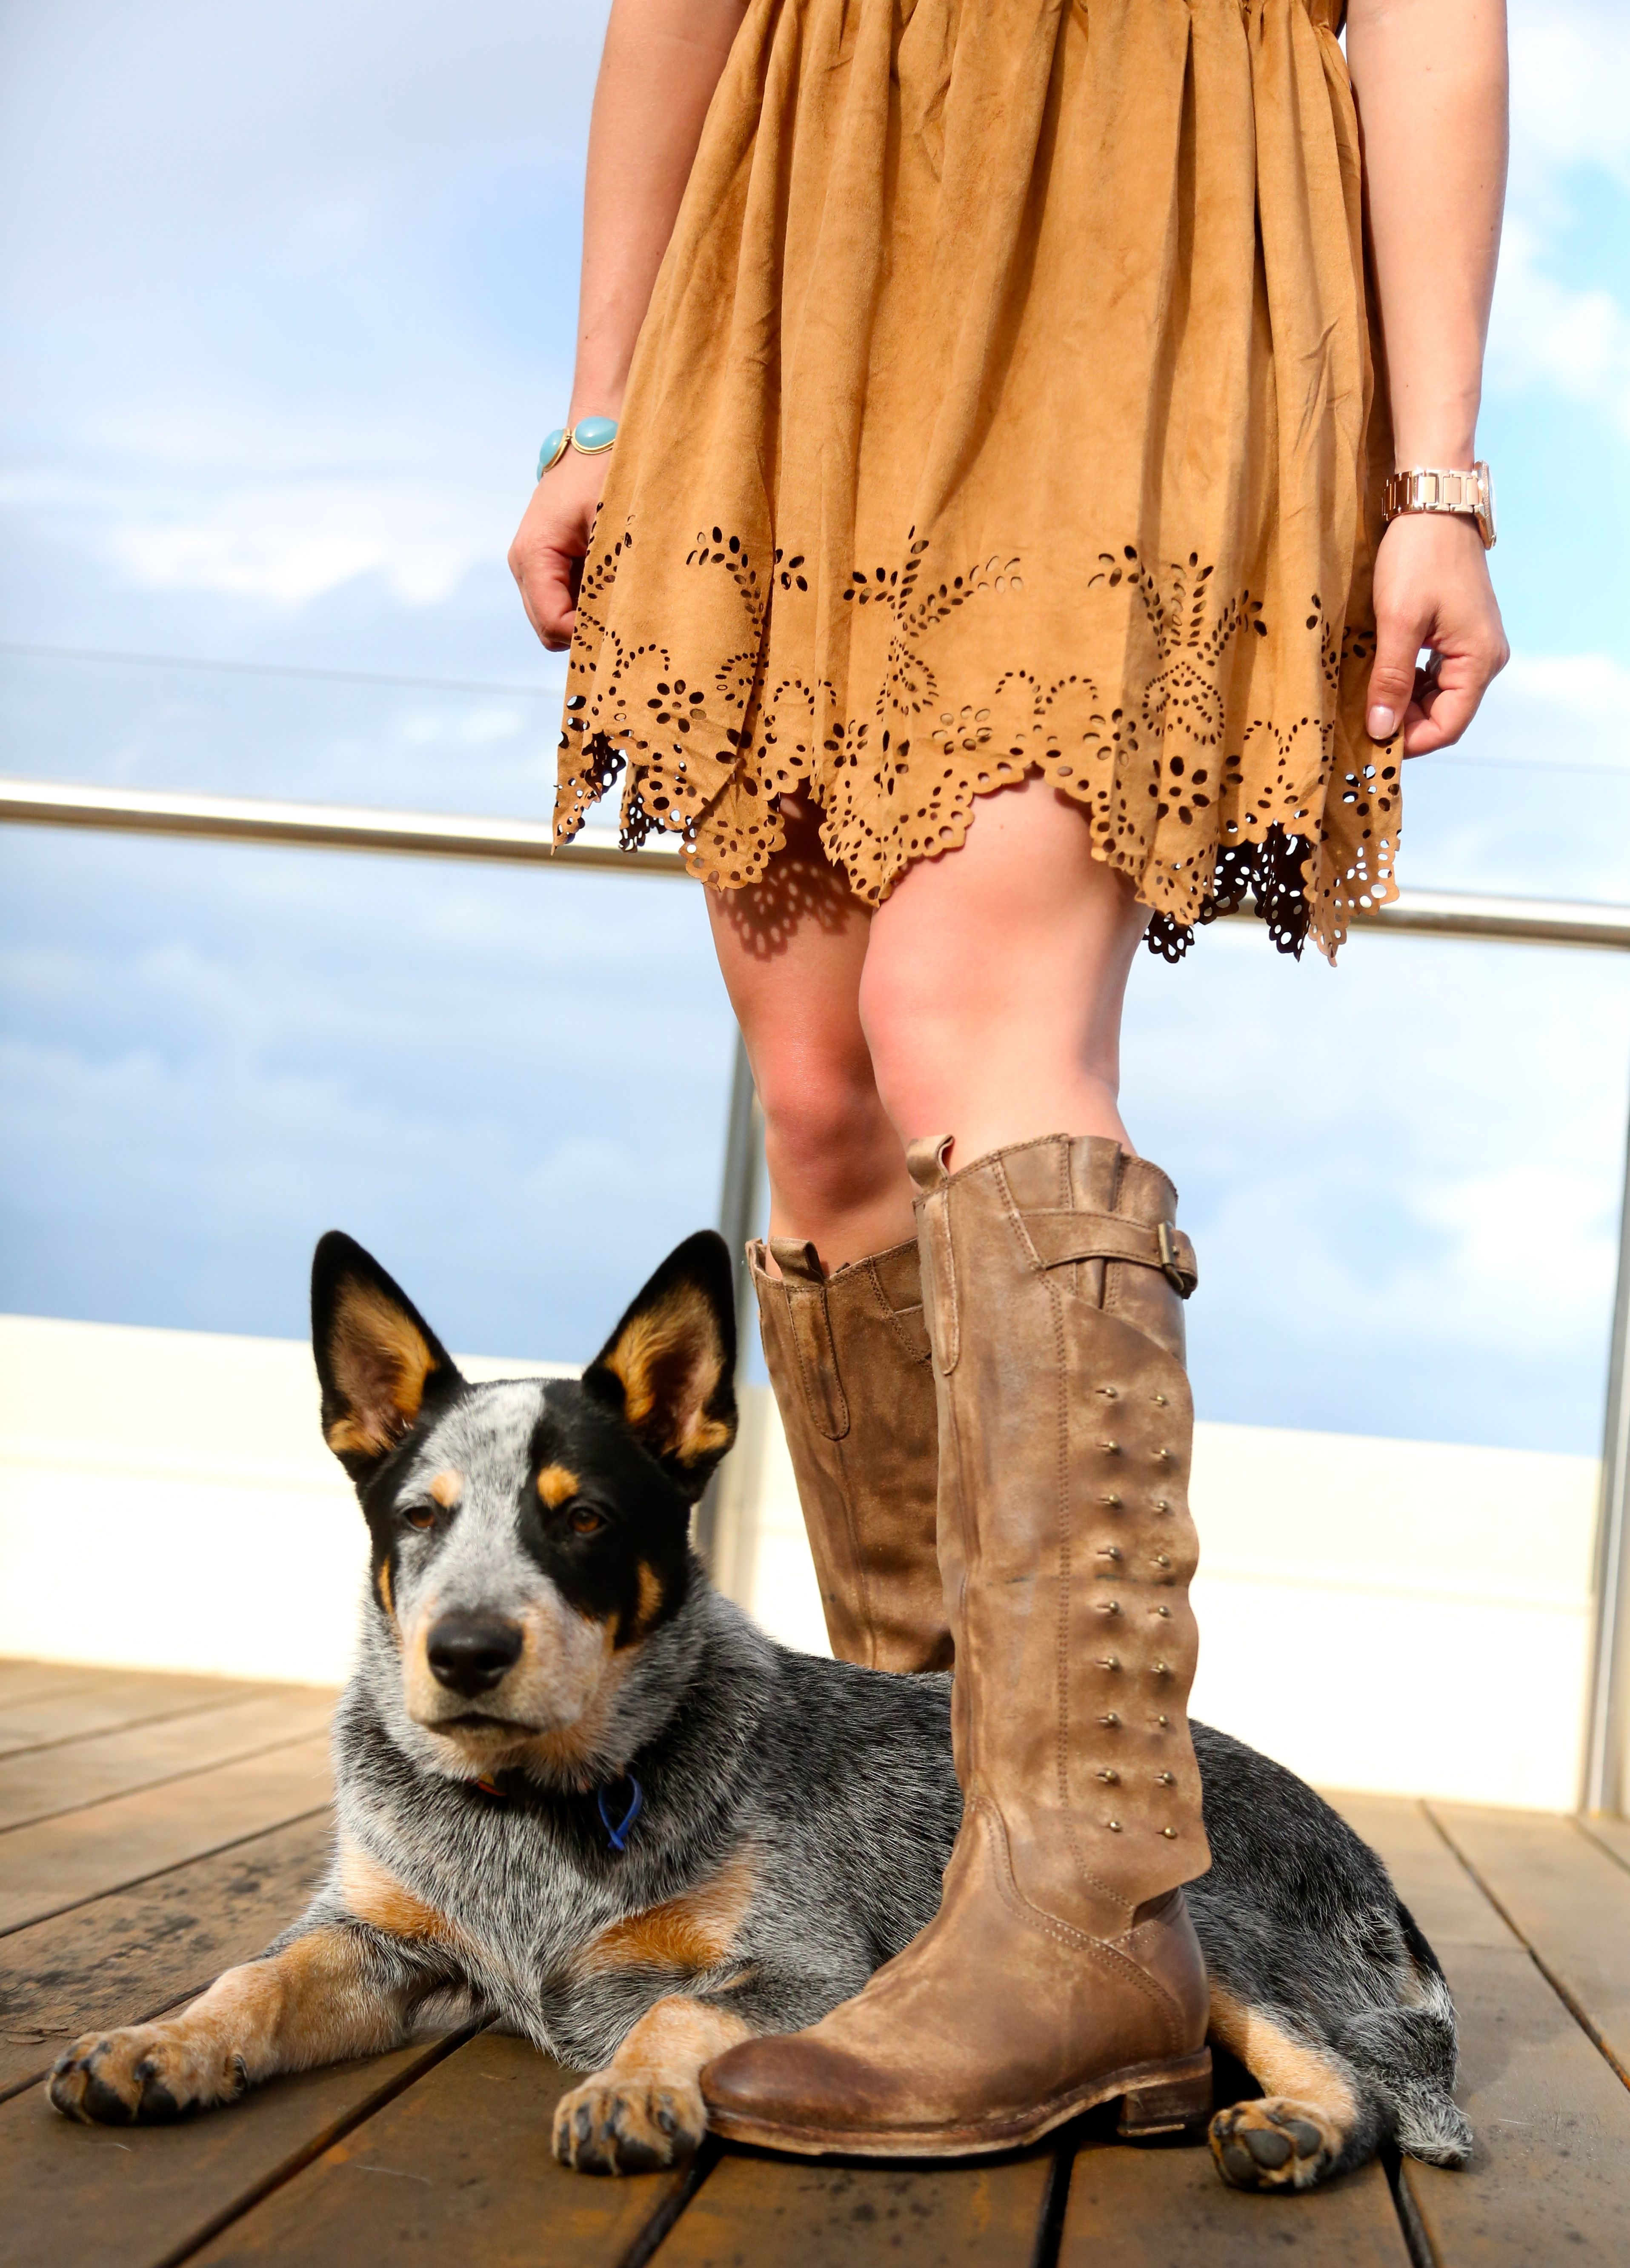 dog and boots...go hand in hand Sure miss my cattle dog